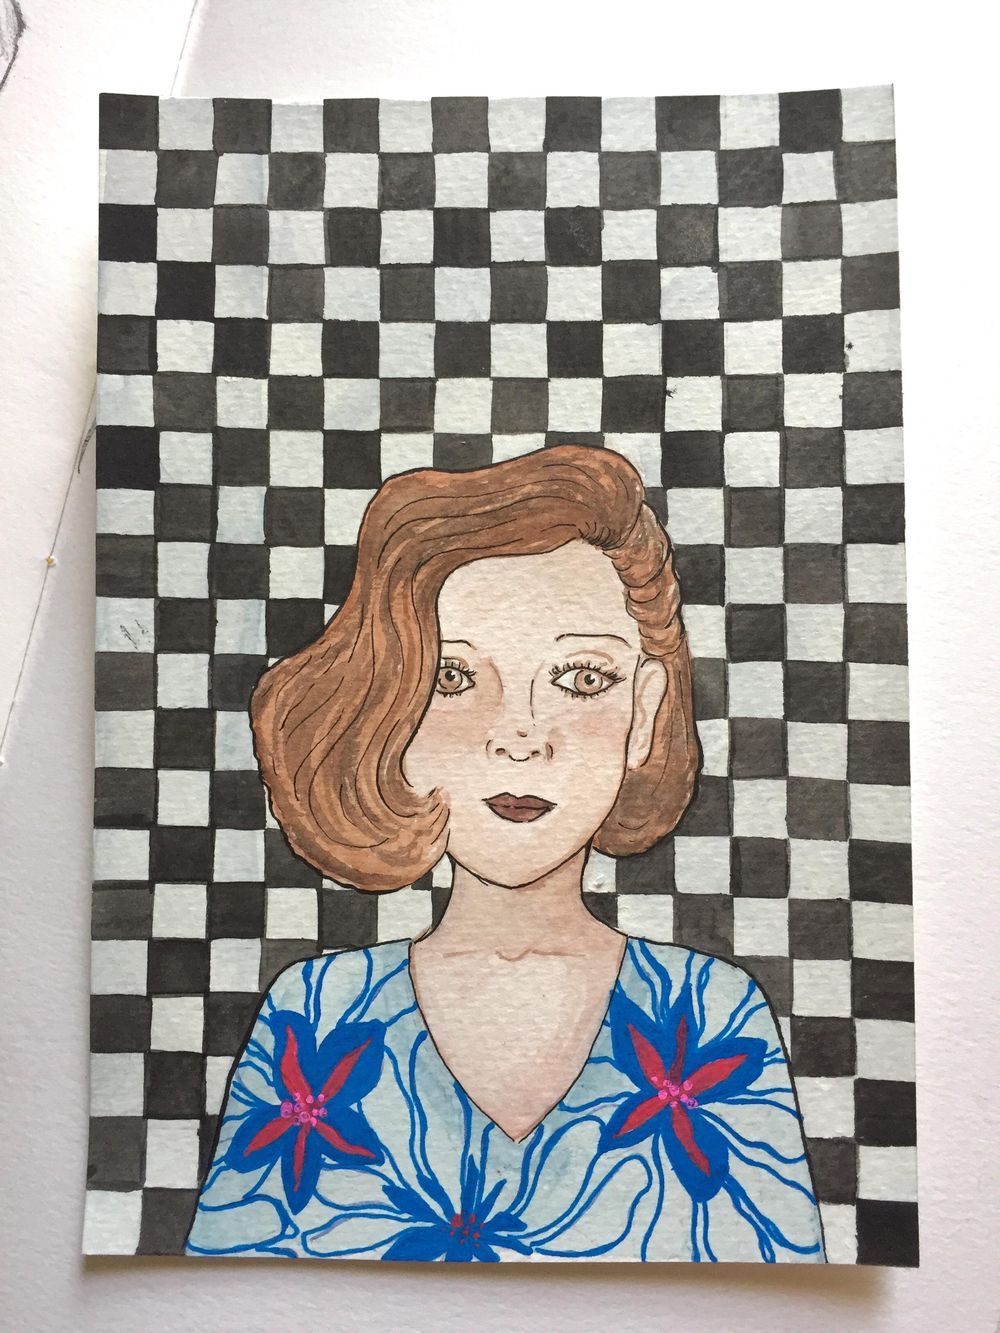 pattern lady - image 1 - student project